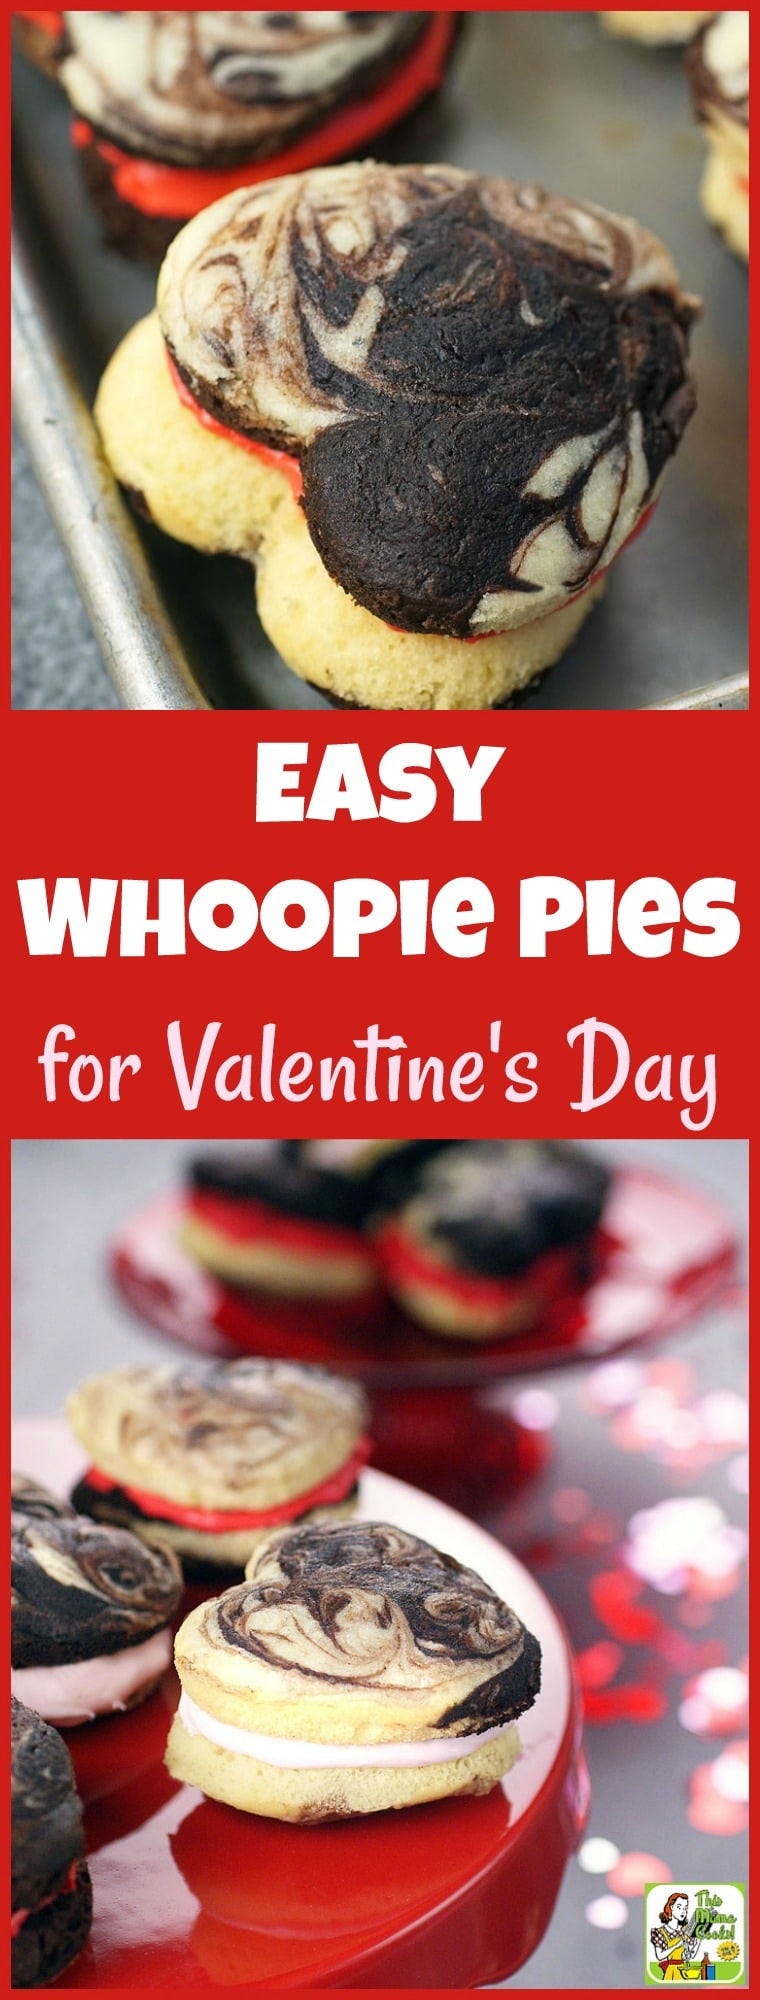 An Easy Whoopie Pies Recipe for Valentine's Day